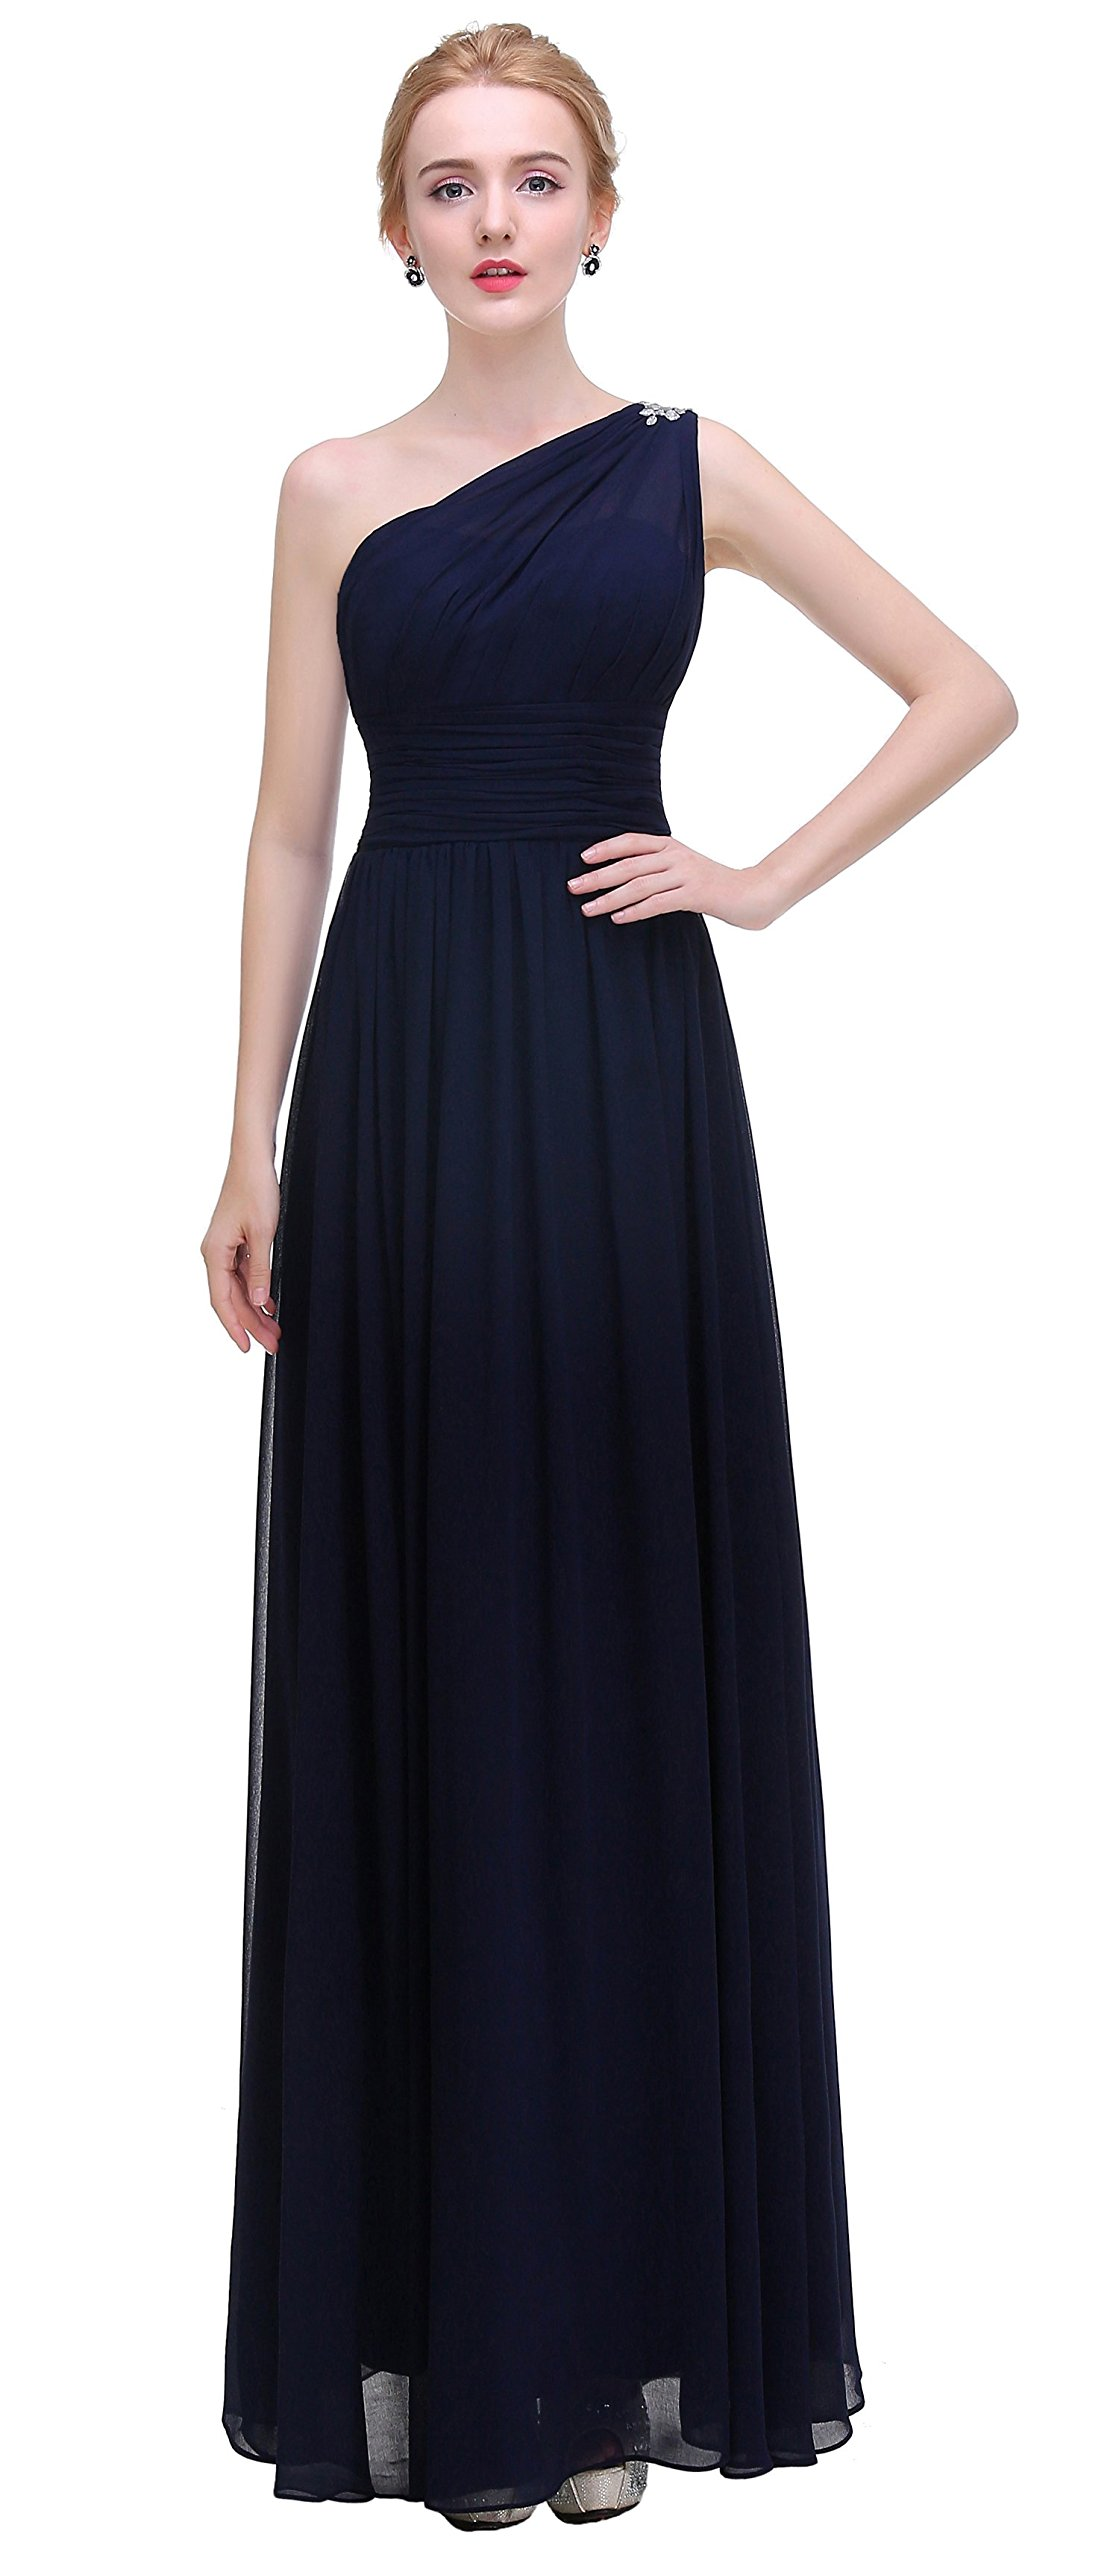 esvor One Shoulder Prom Party Evening Gown Long Bridesmaids Dress Navy 6